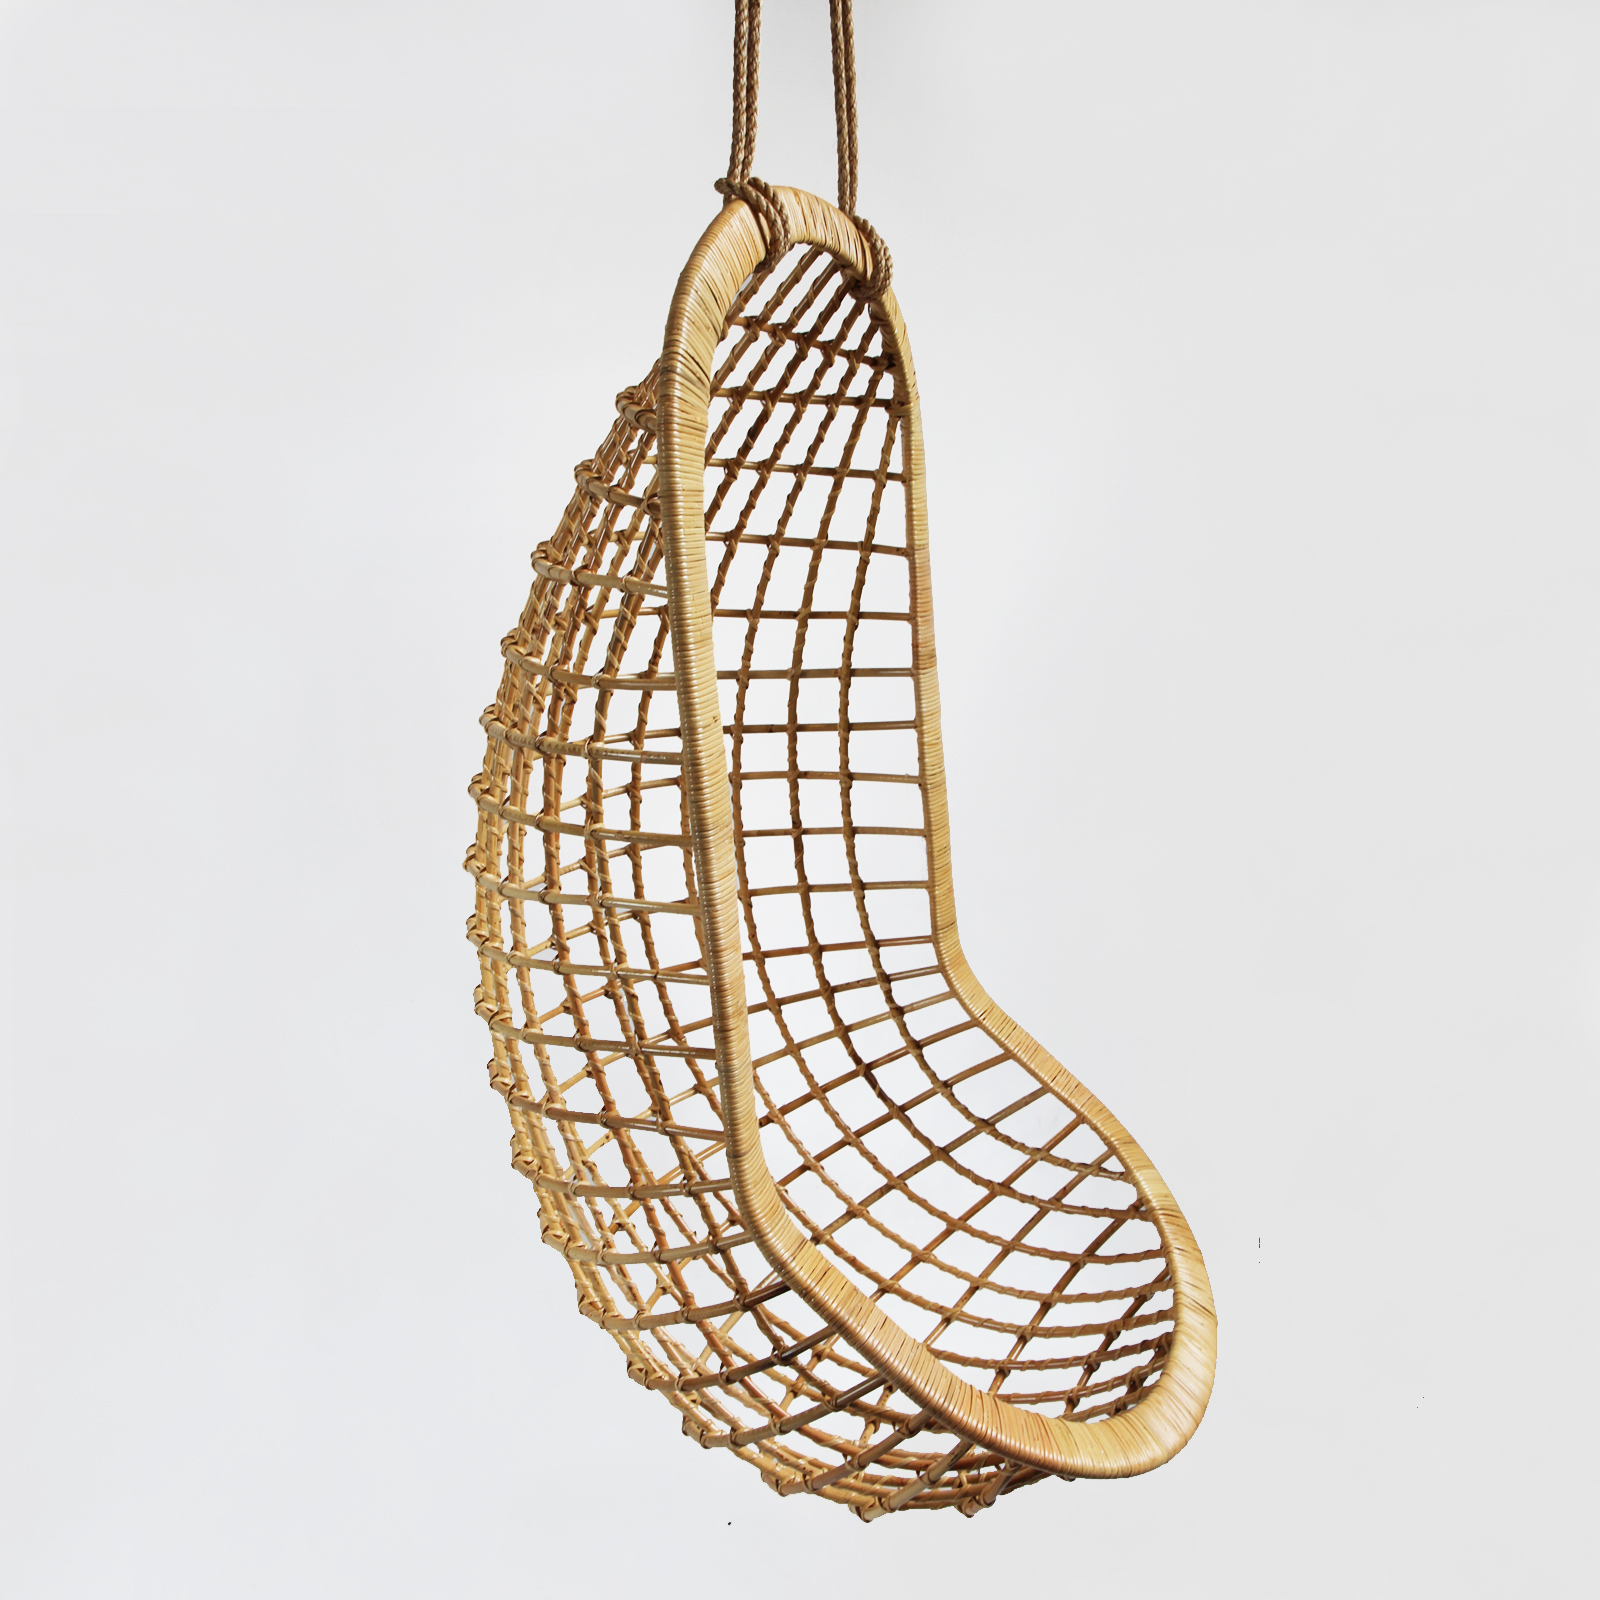 Hanging Pod Chair Swing Furniture Design Mix Gallery